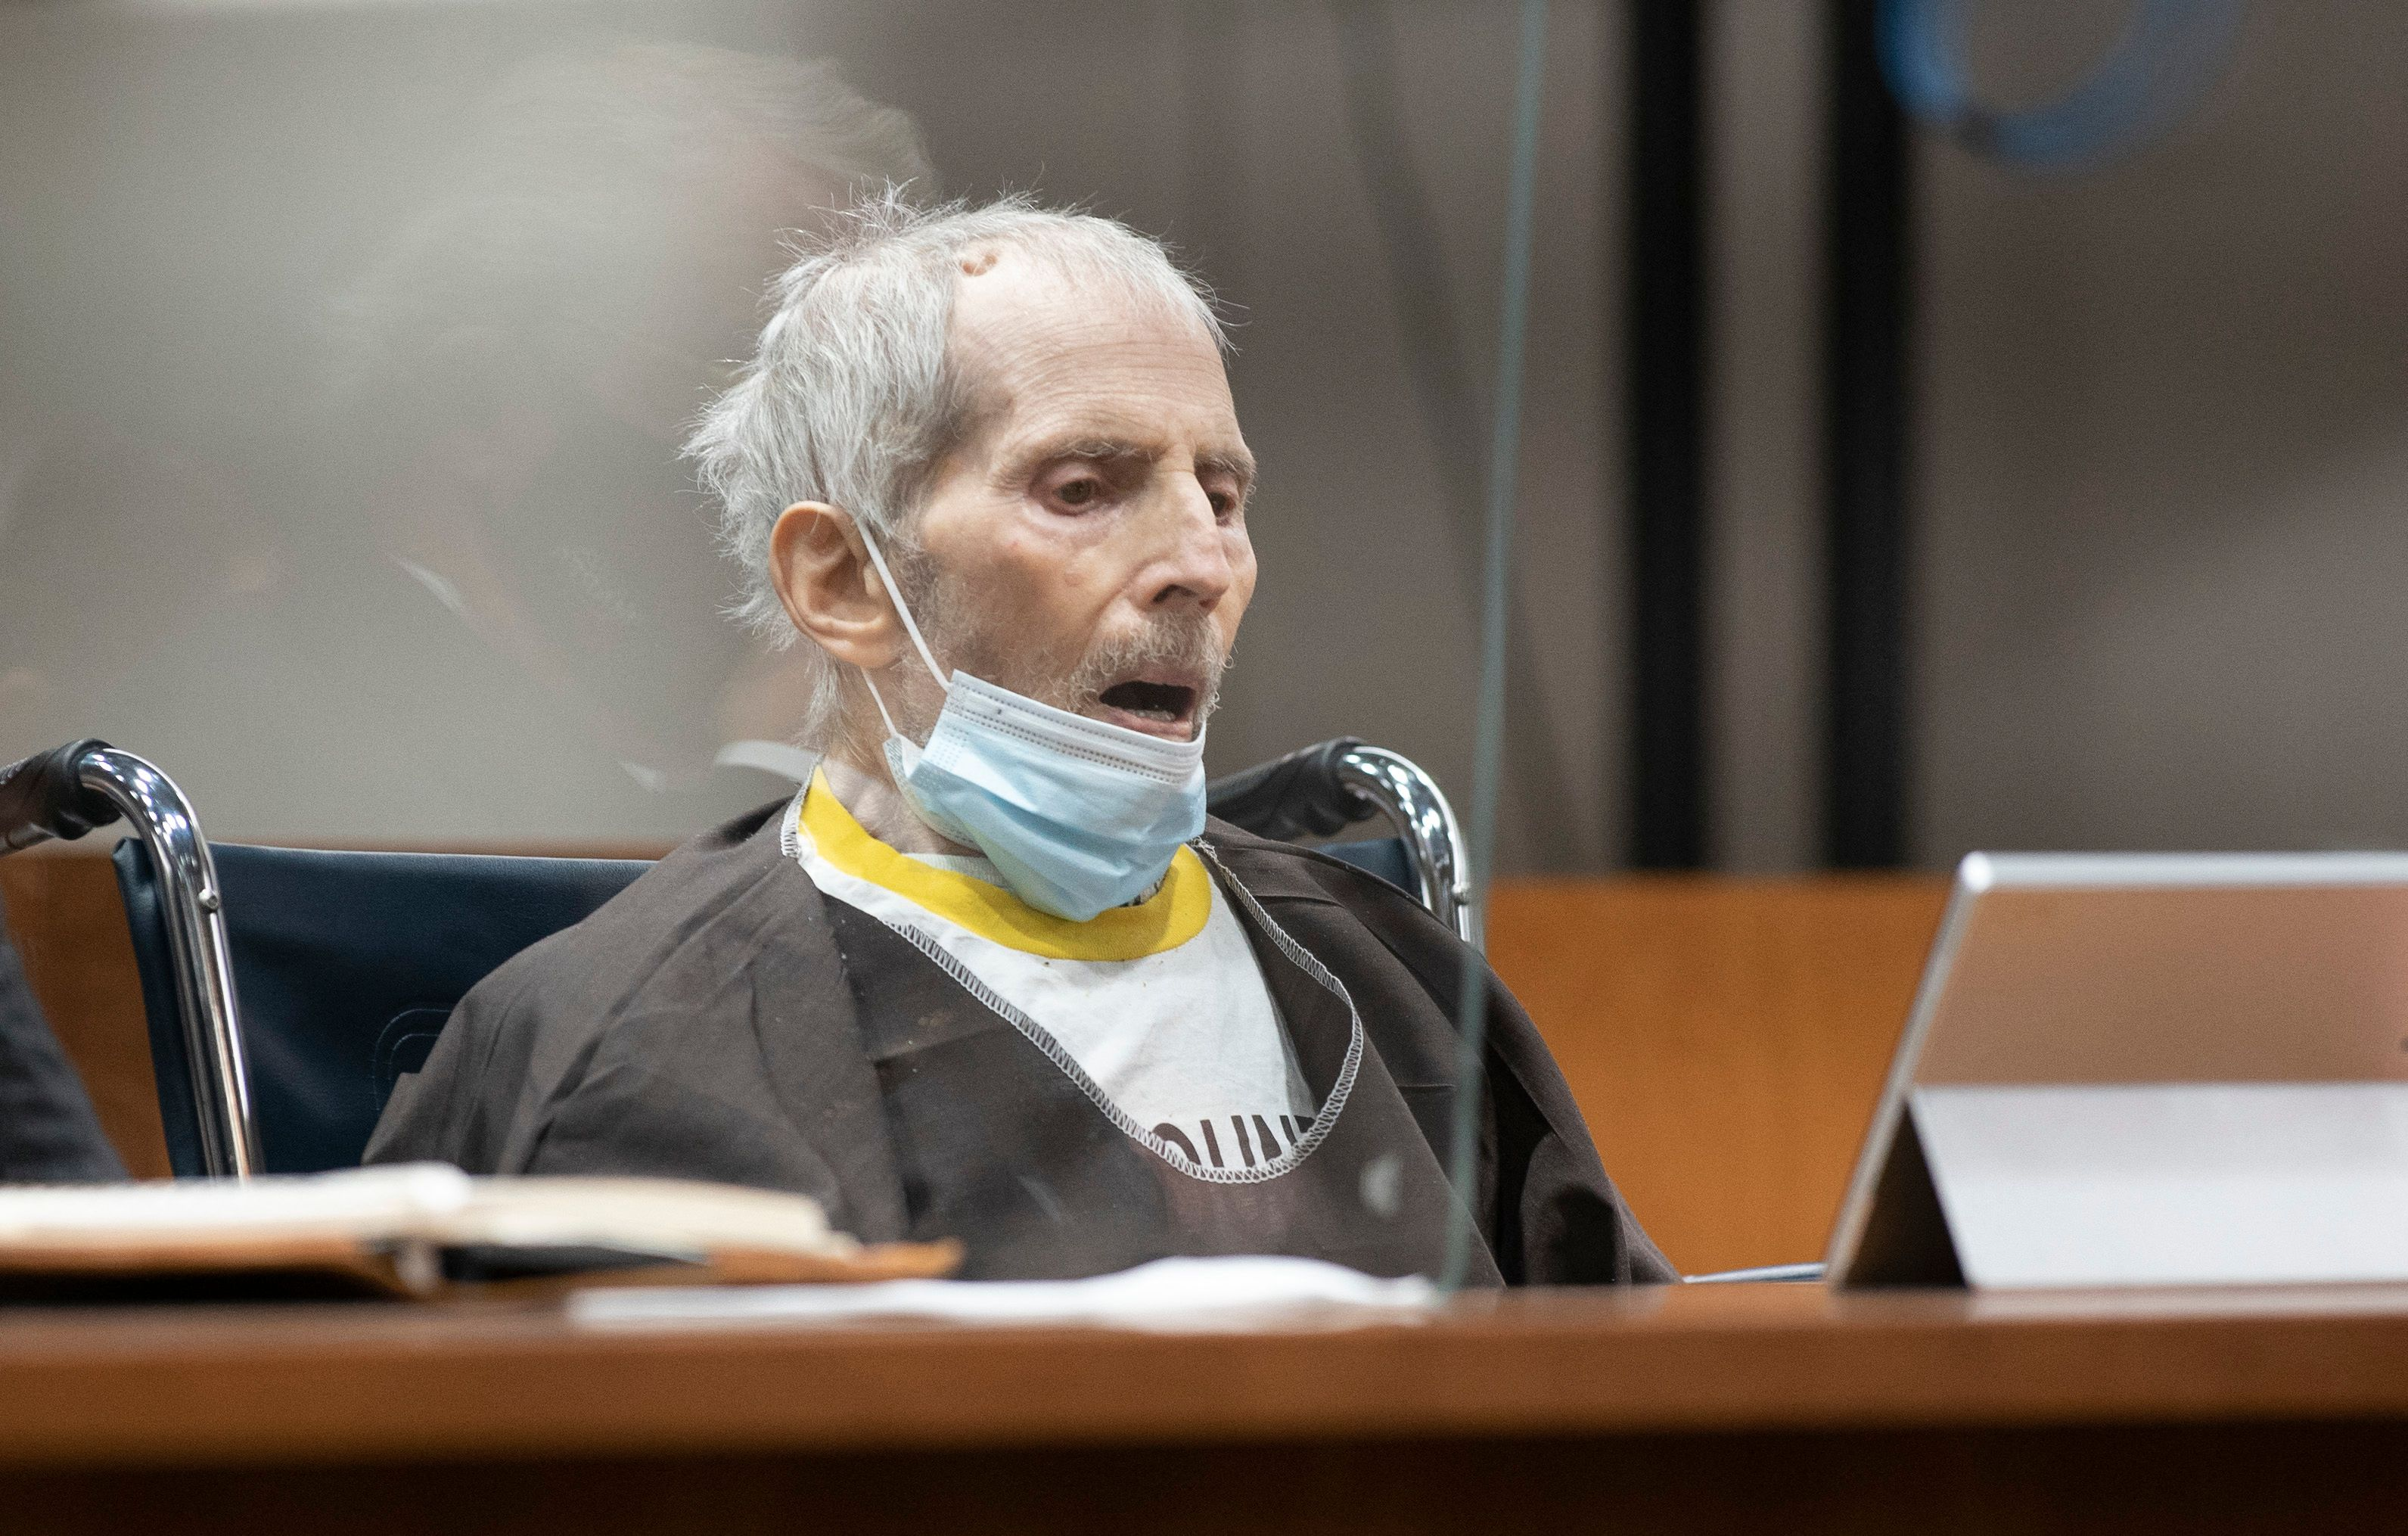 In this file photo taken on October 14, 2021, Robert Durst is seen in Los Angeles as he is sentenced to life without possibility of parole for the killing of Susan Berman.